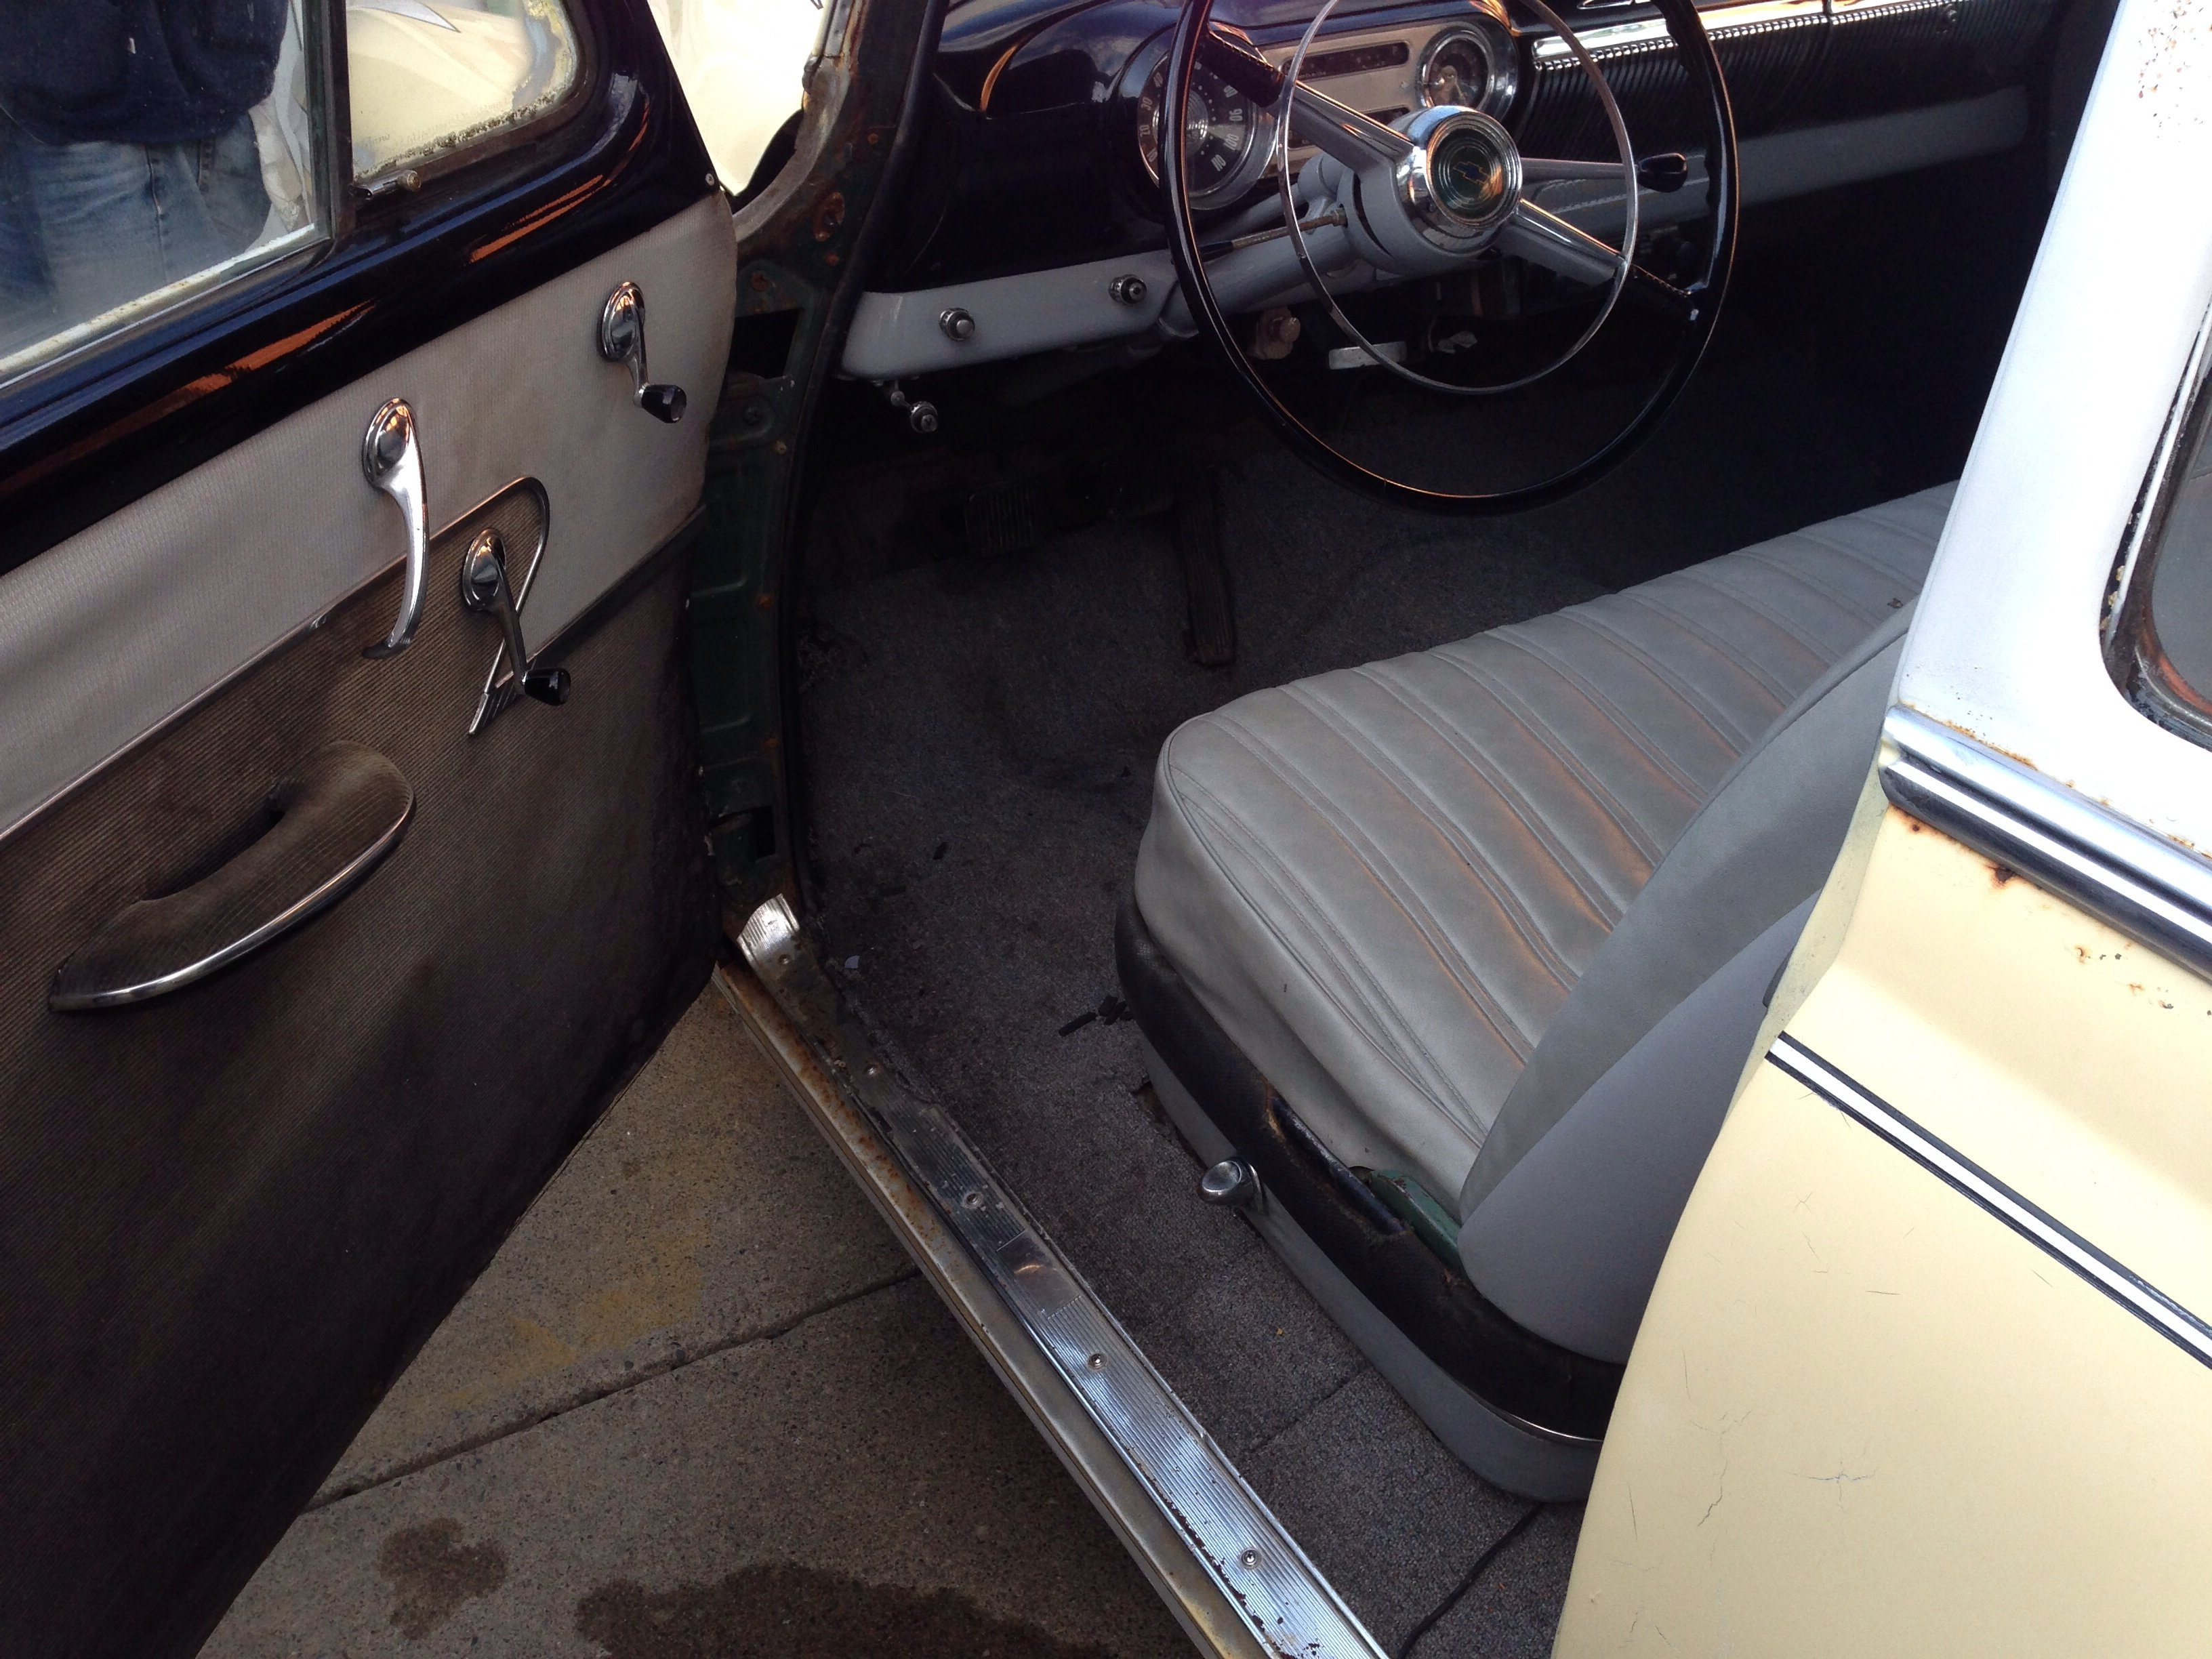 Car interior paint job - It Has A Vintage Scallop Paint Job This Car Has Tuck And Roll Interior With A Nice Black Dash And Headliner Call Jon P S Auto 607 785 6413